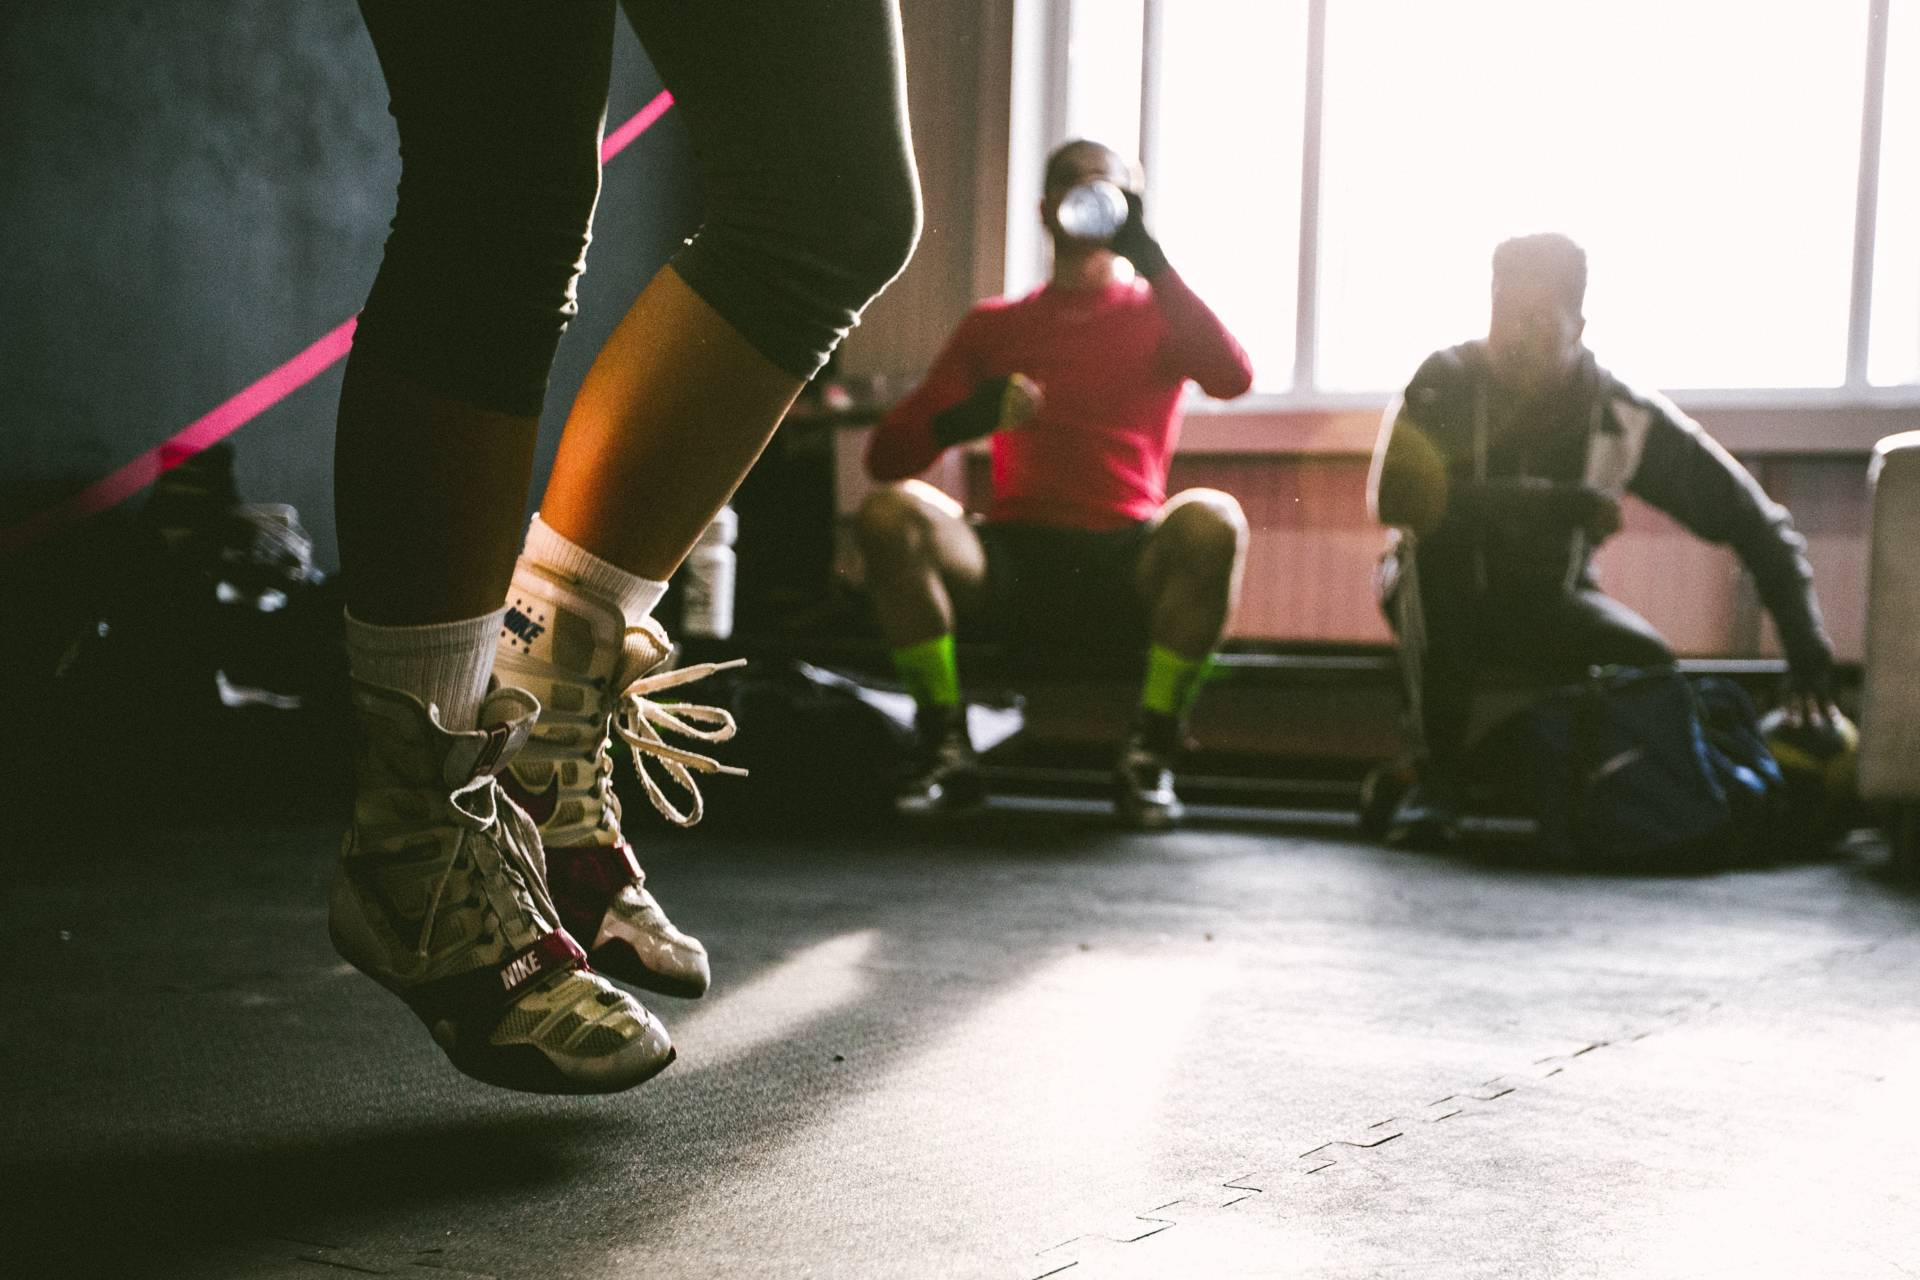 How Much Exercise Do You Really Need To Do For Results?